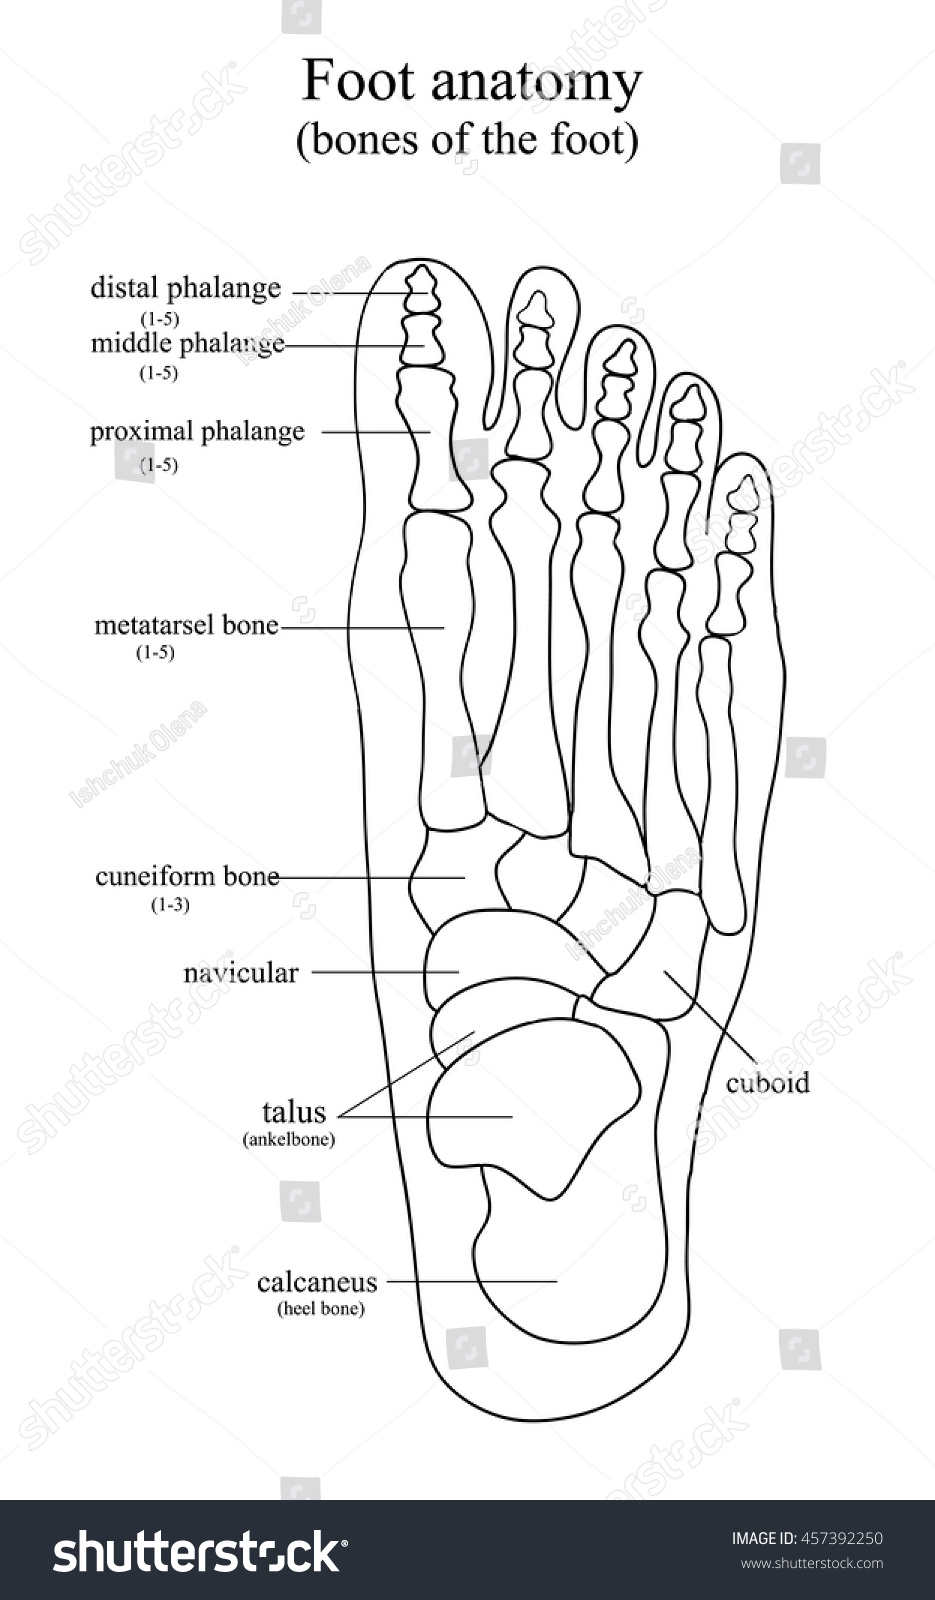 Anatomical Drawing Foot Stock Vector 457392250 - Shutterstock